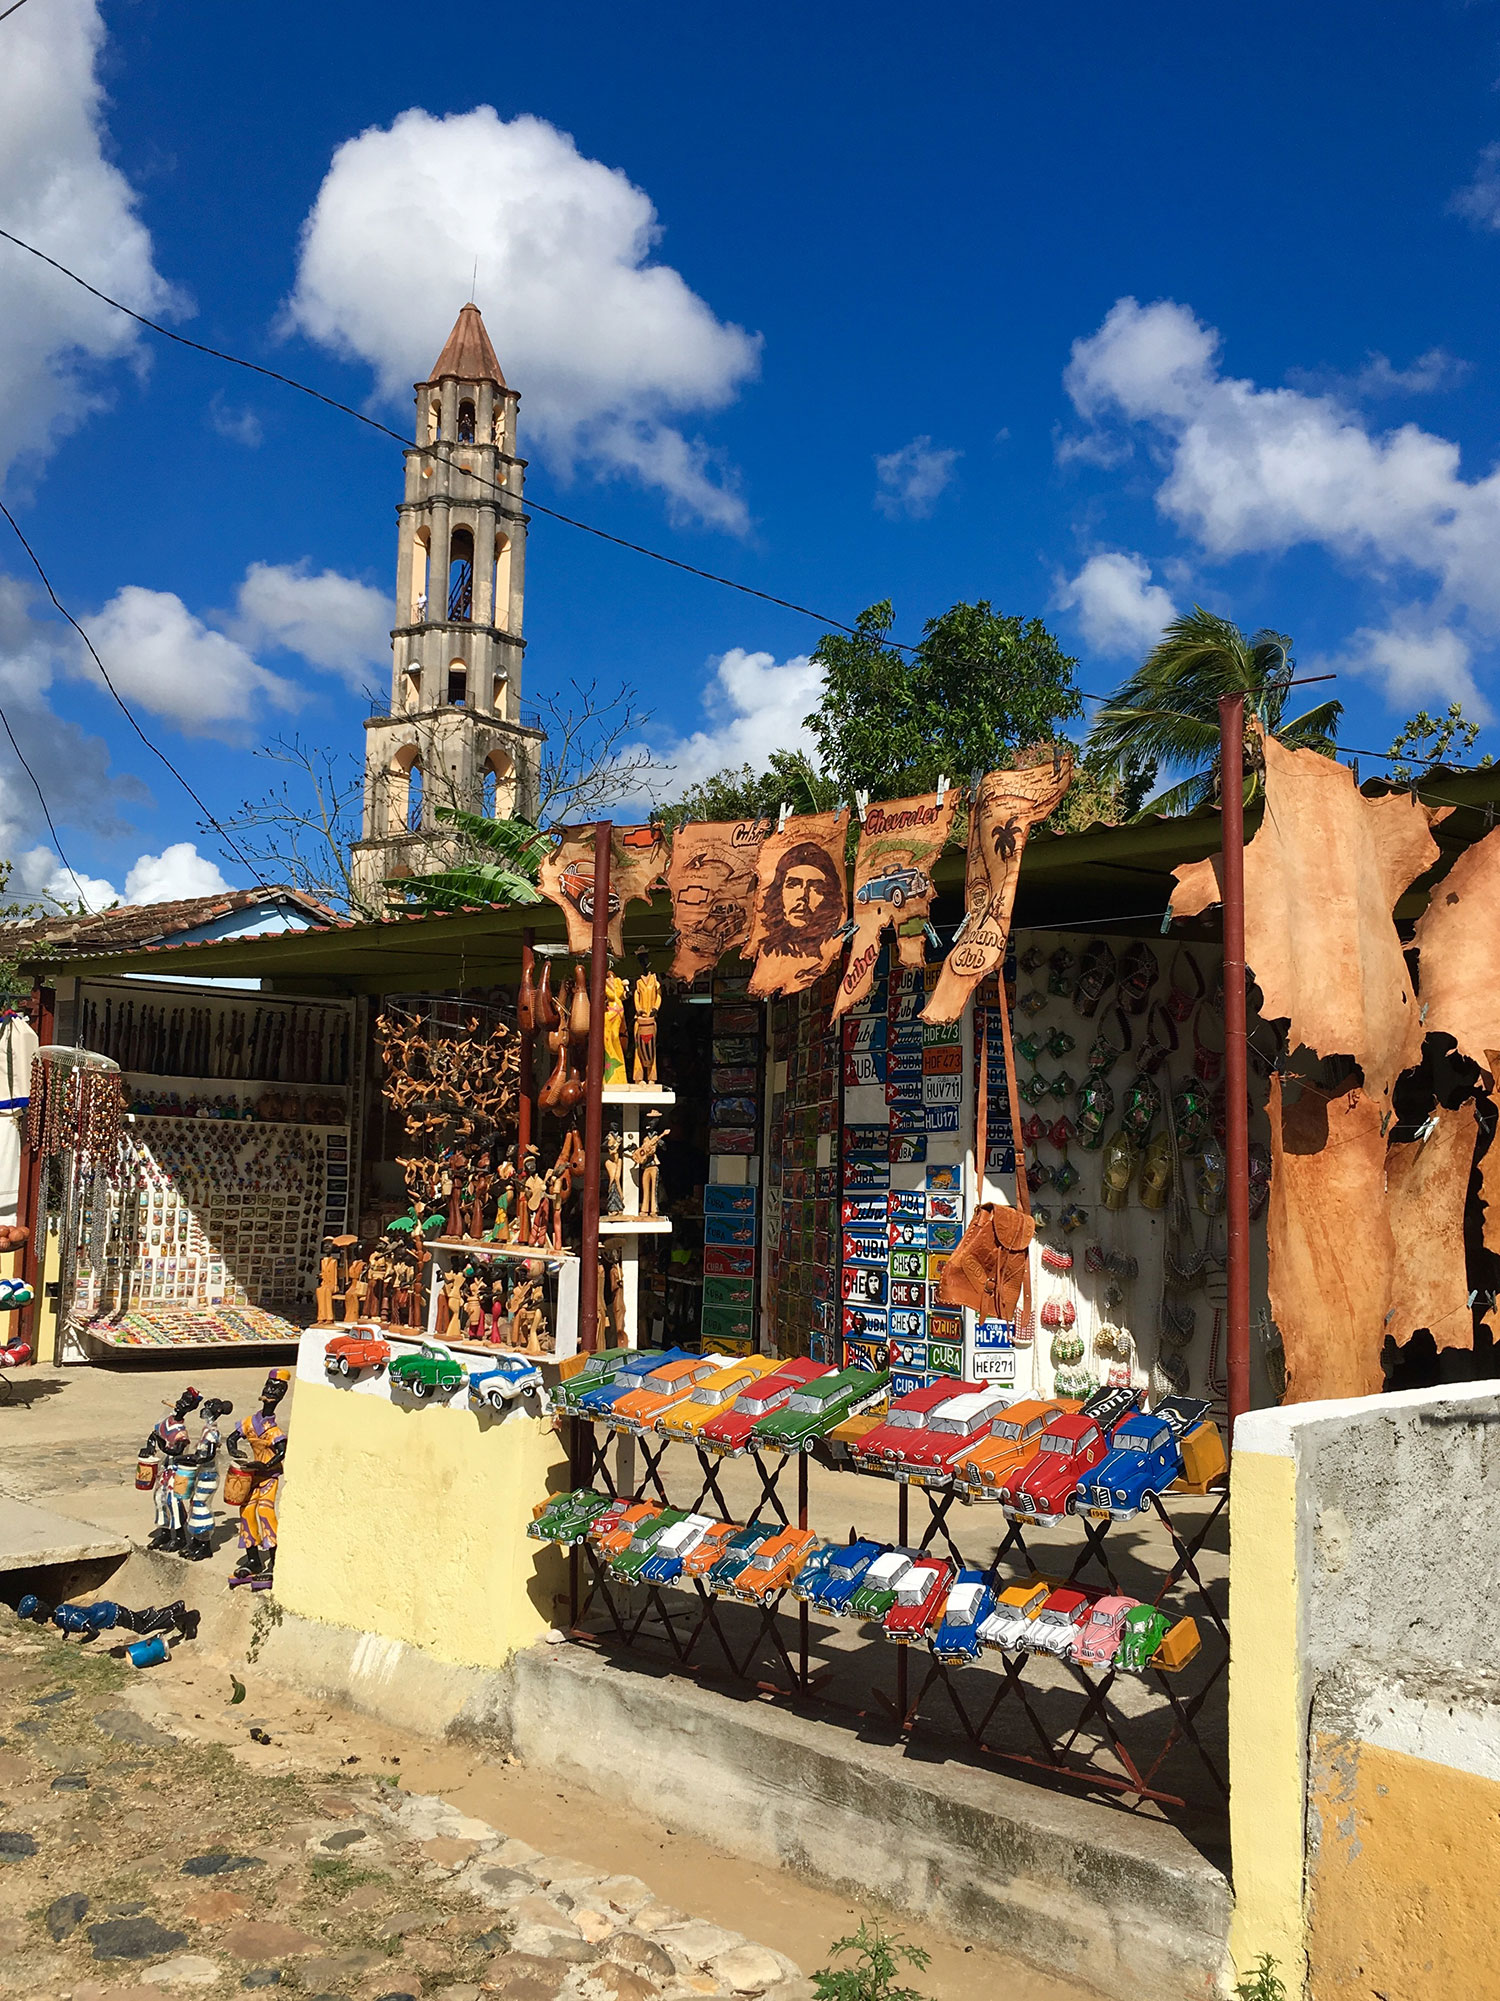 The stalls of the vendors line the path to the hacienda.